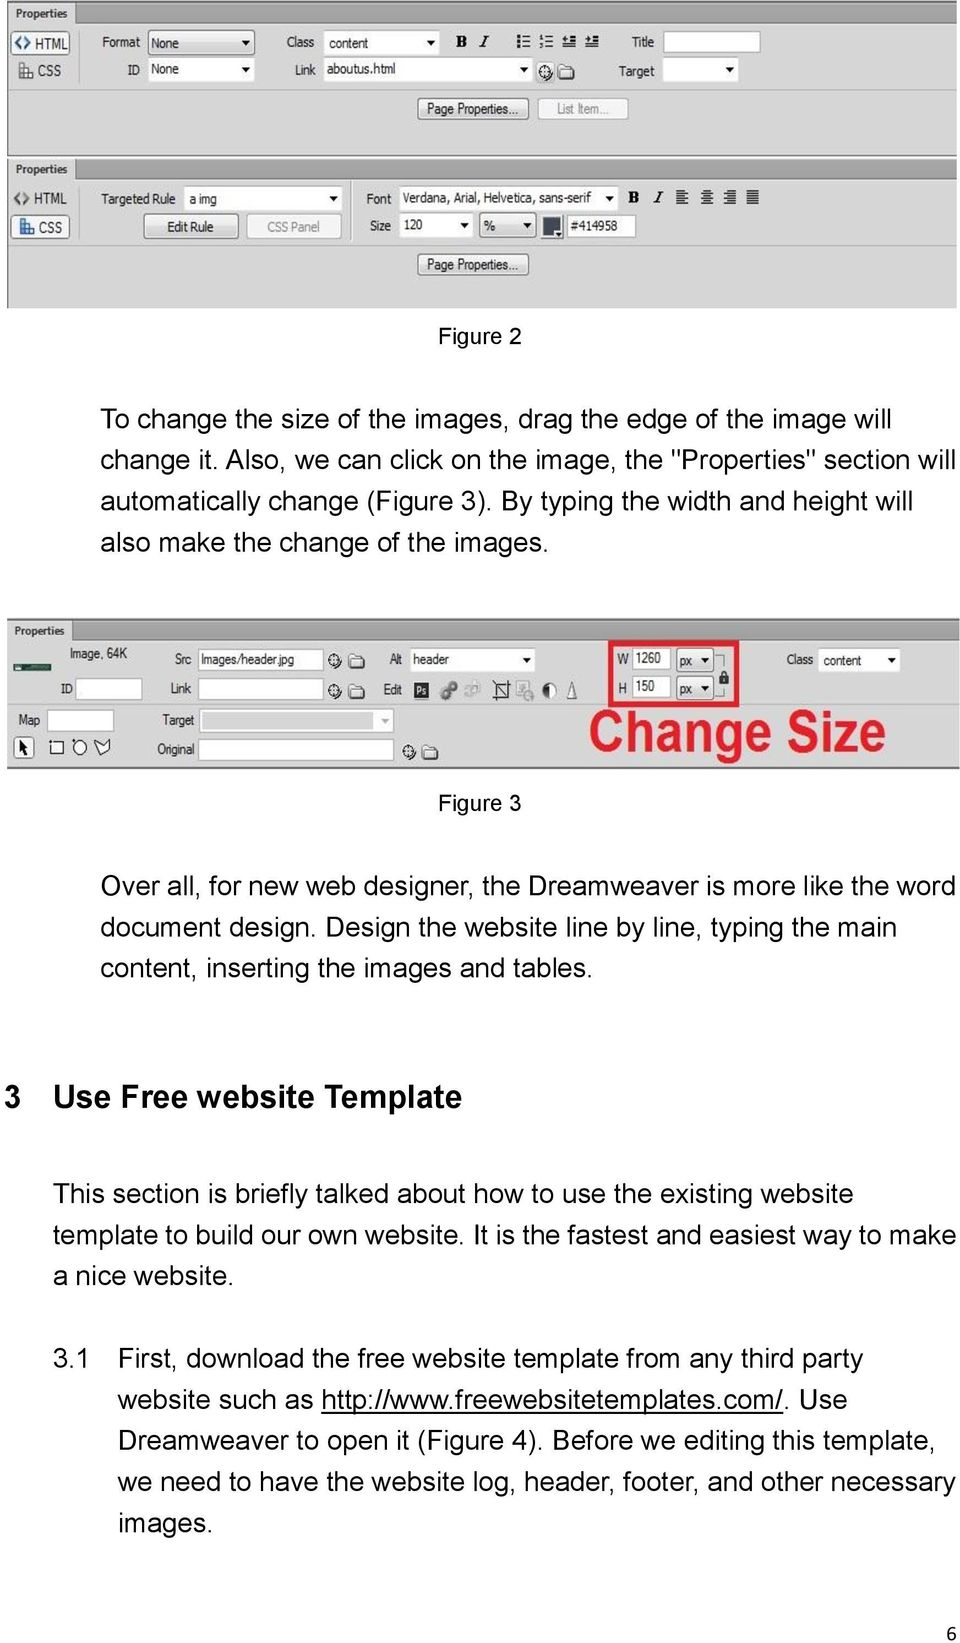 Design the website line by line, typing the main content, inserting the images and tables.